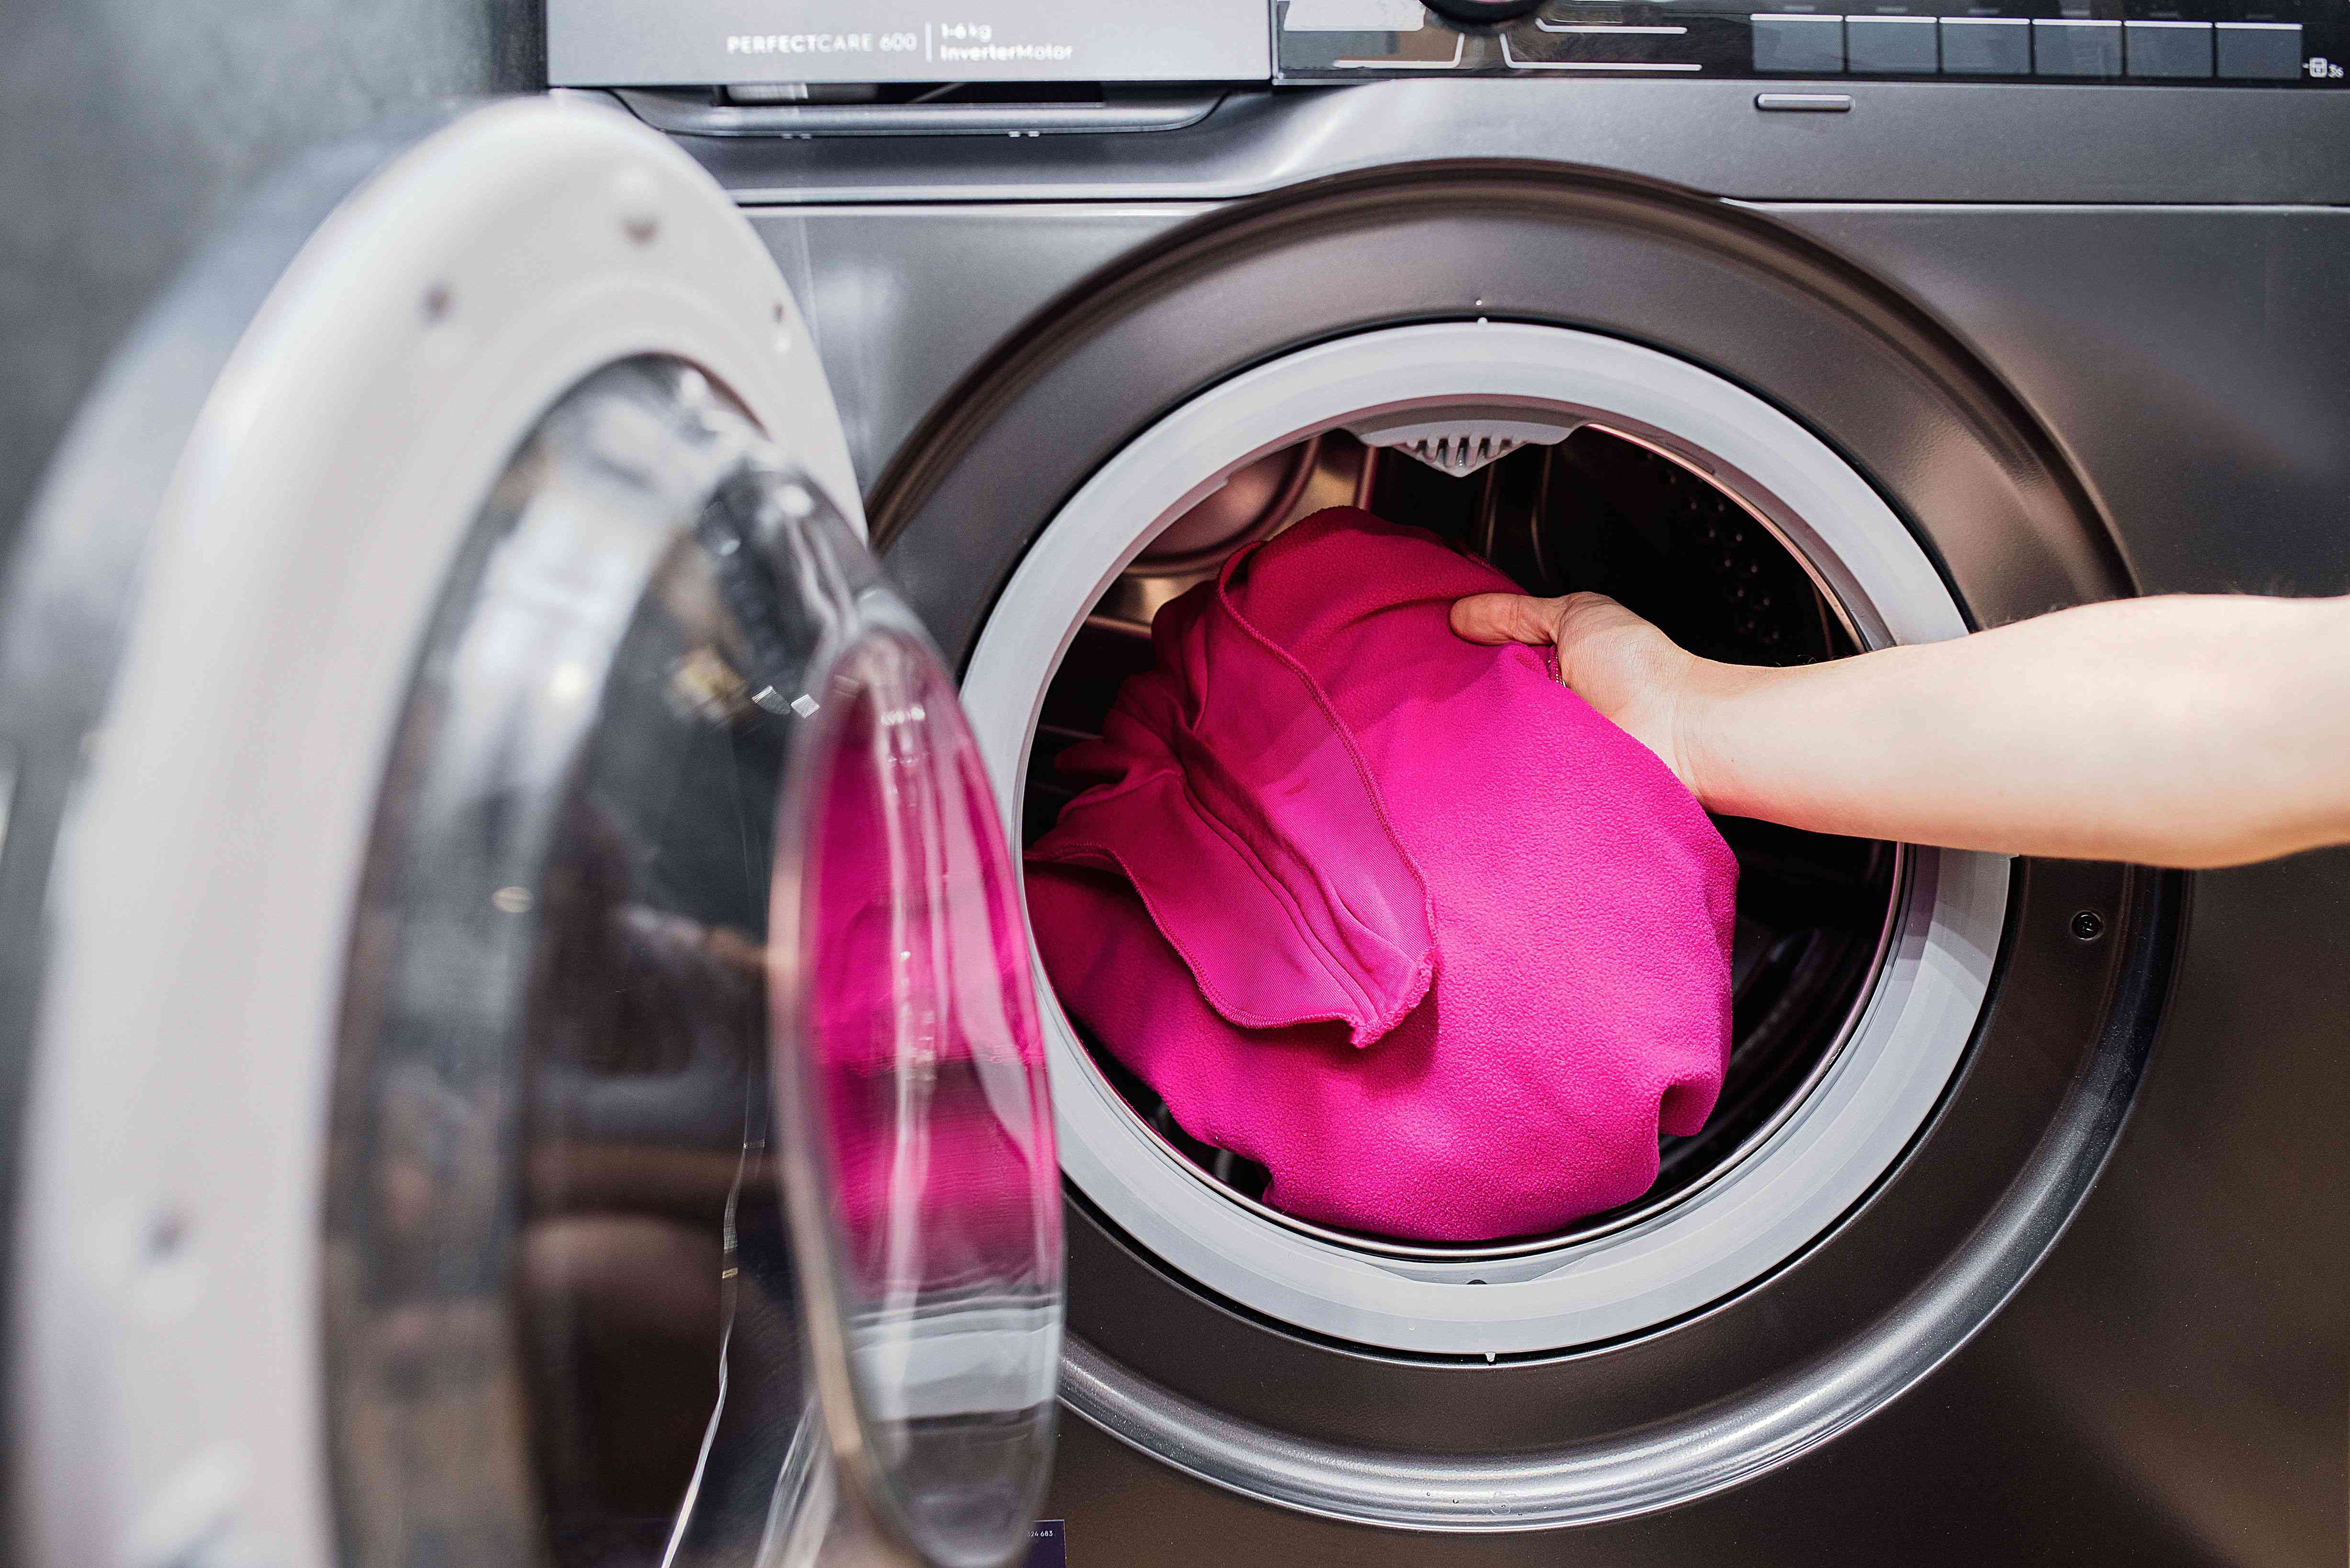 Washing the fleece jacket in the washer